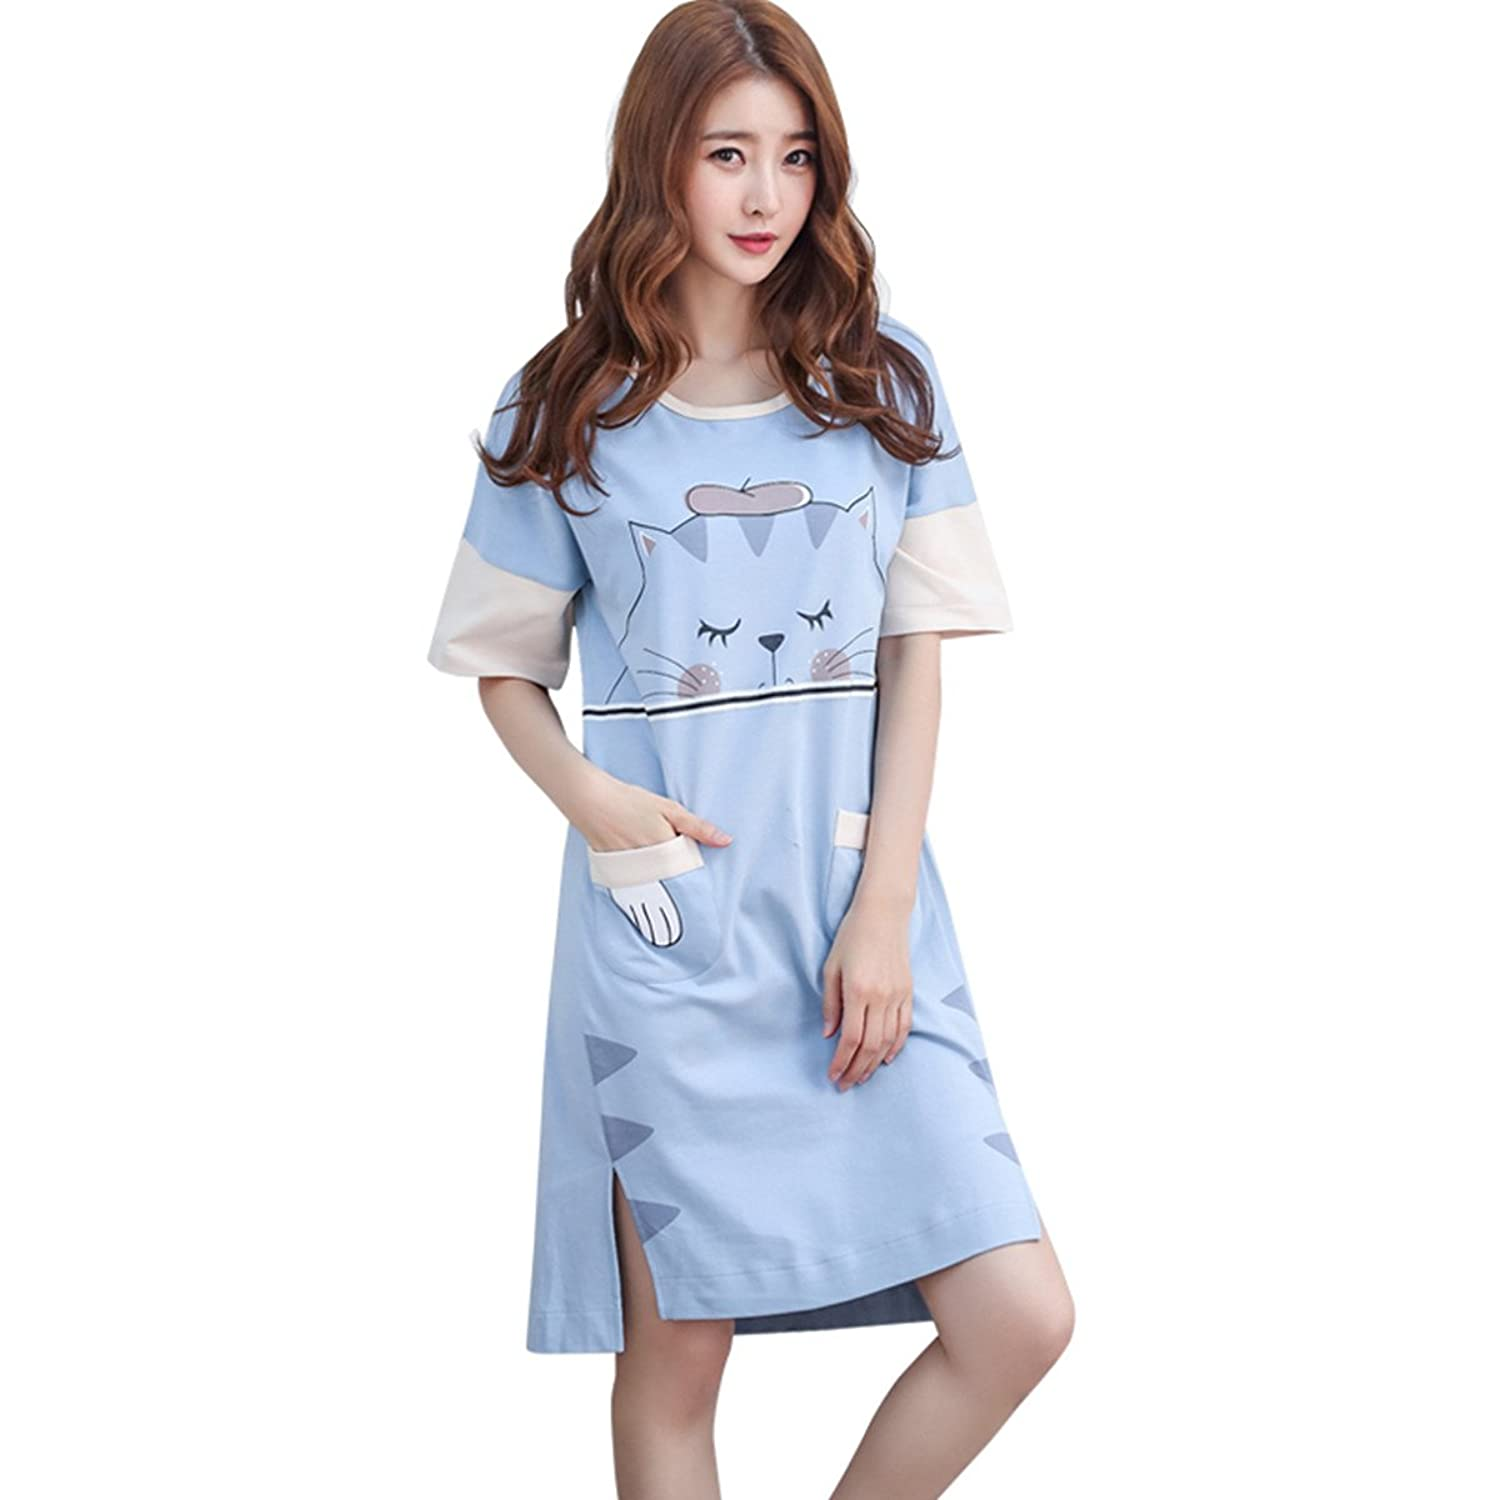 Women s Short Sleeve Nightgown Cotton Sleep Dress Cute Sleepwear Pajamas e09a9cede